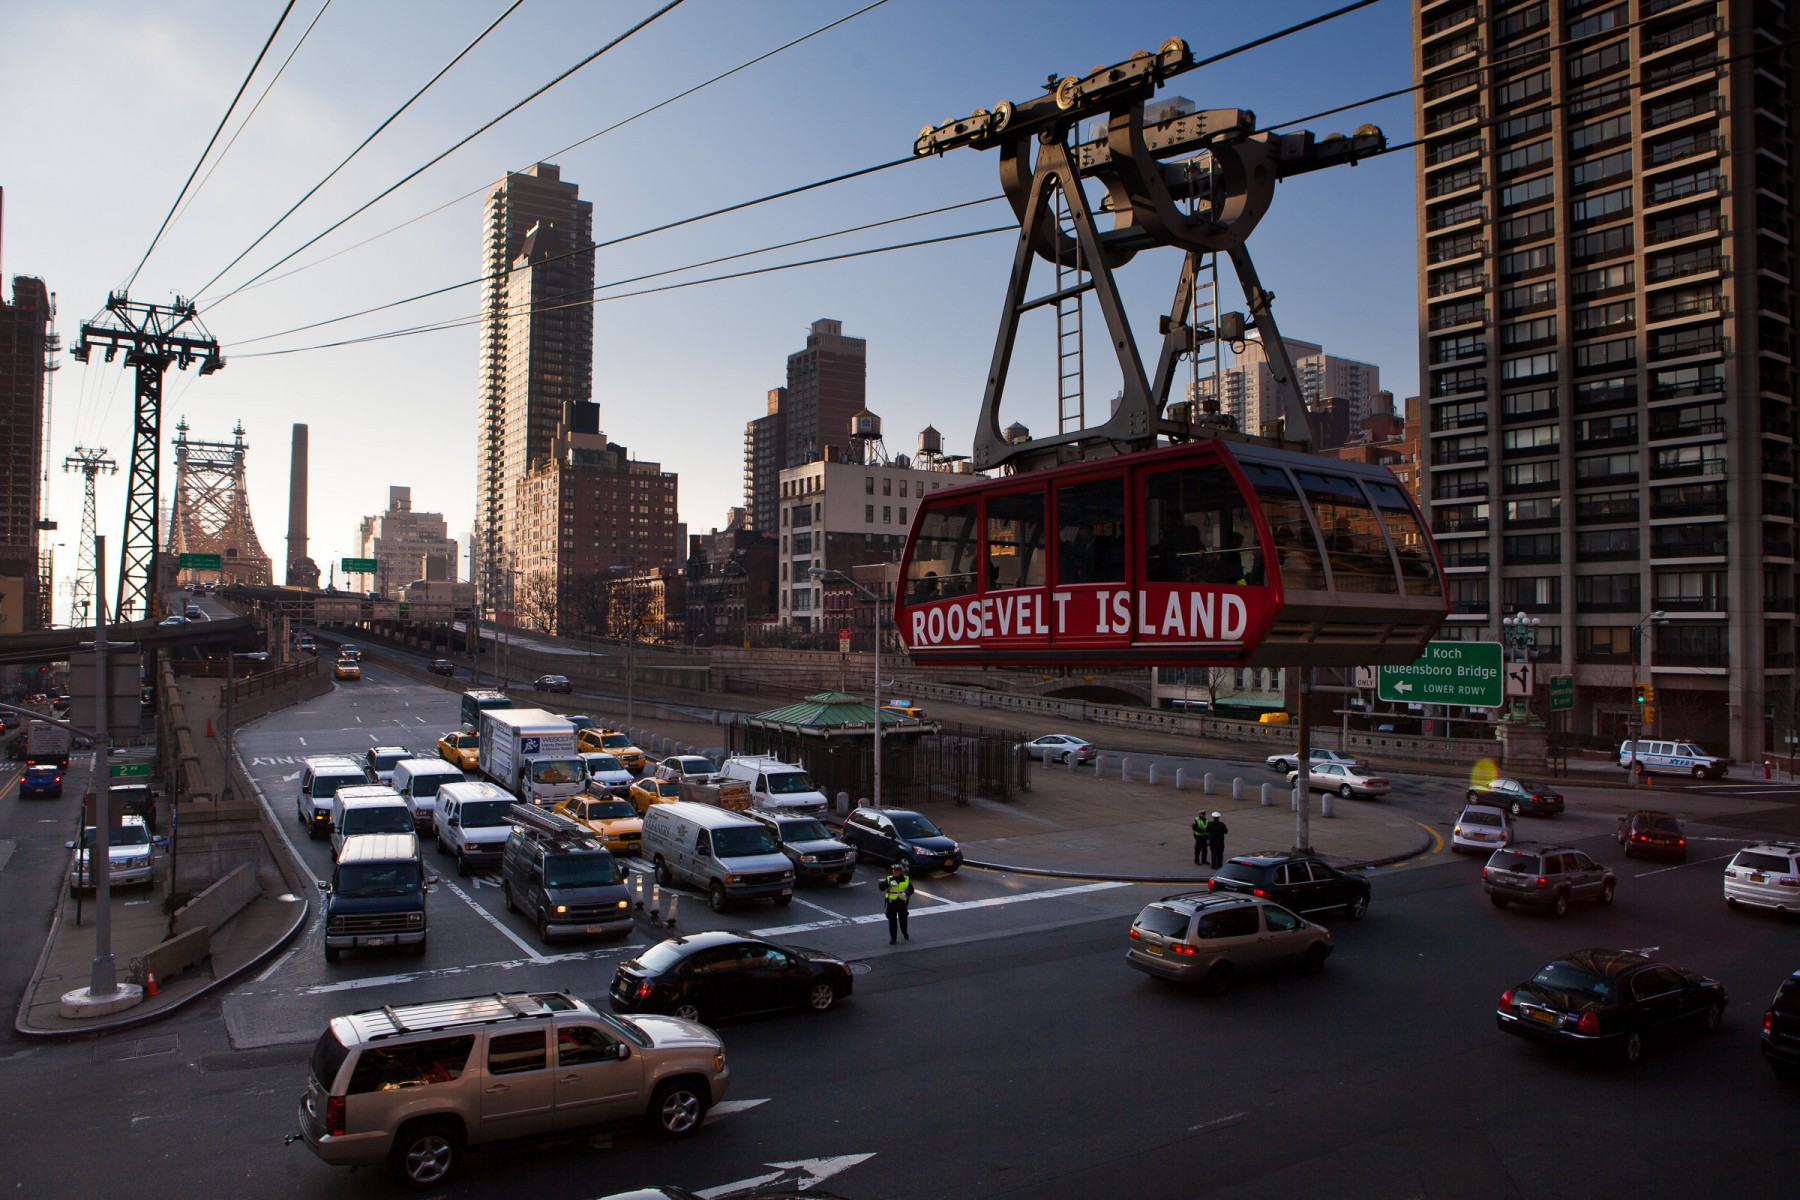 The Roosevelt island aerial tram running parallel with the Queensboro Bridge in NYC.